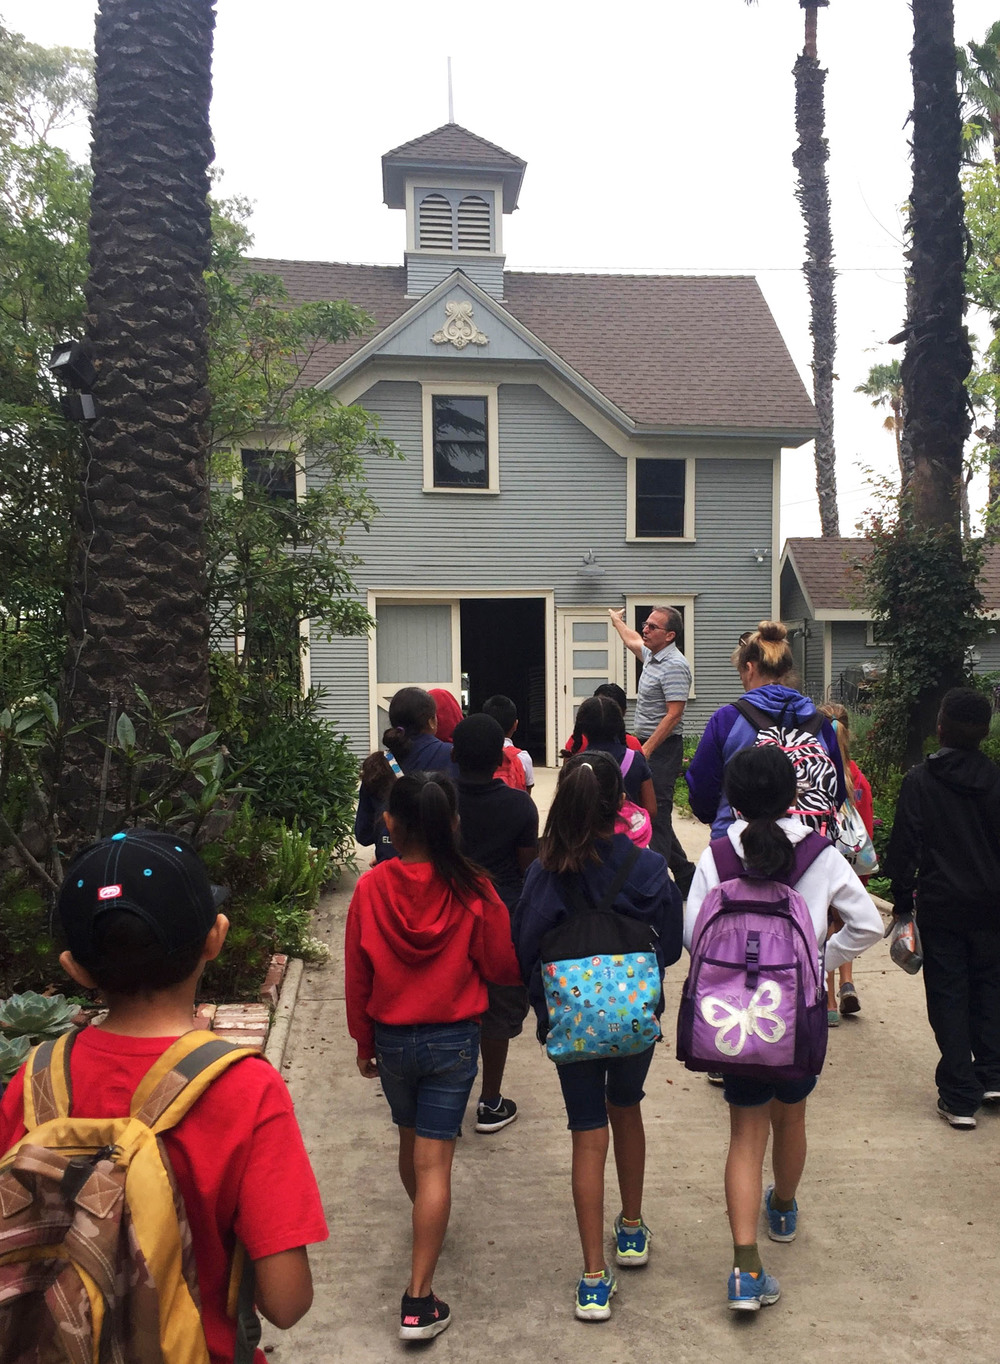 Children explore the historic Bembridge House Museum in Downtown Long Beach, photo by We Are the Next.